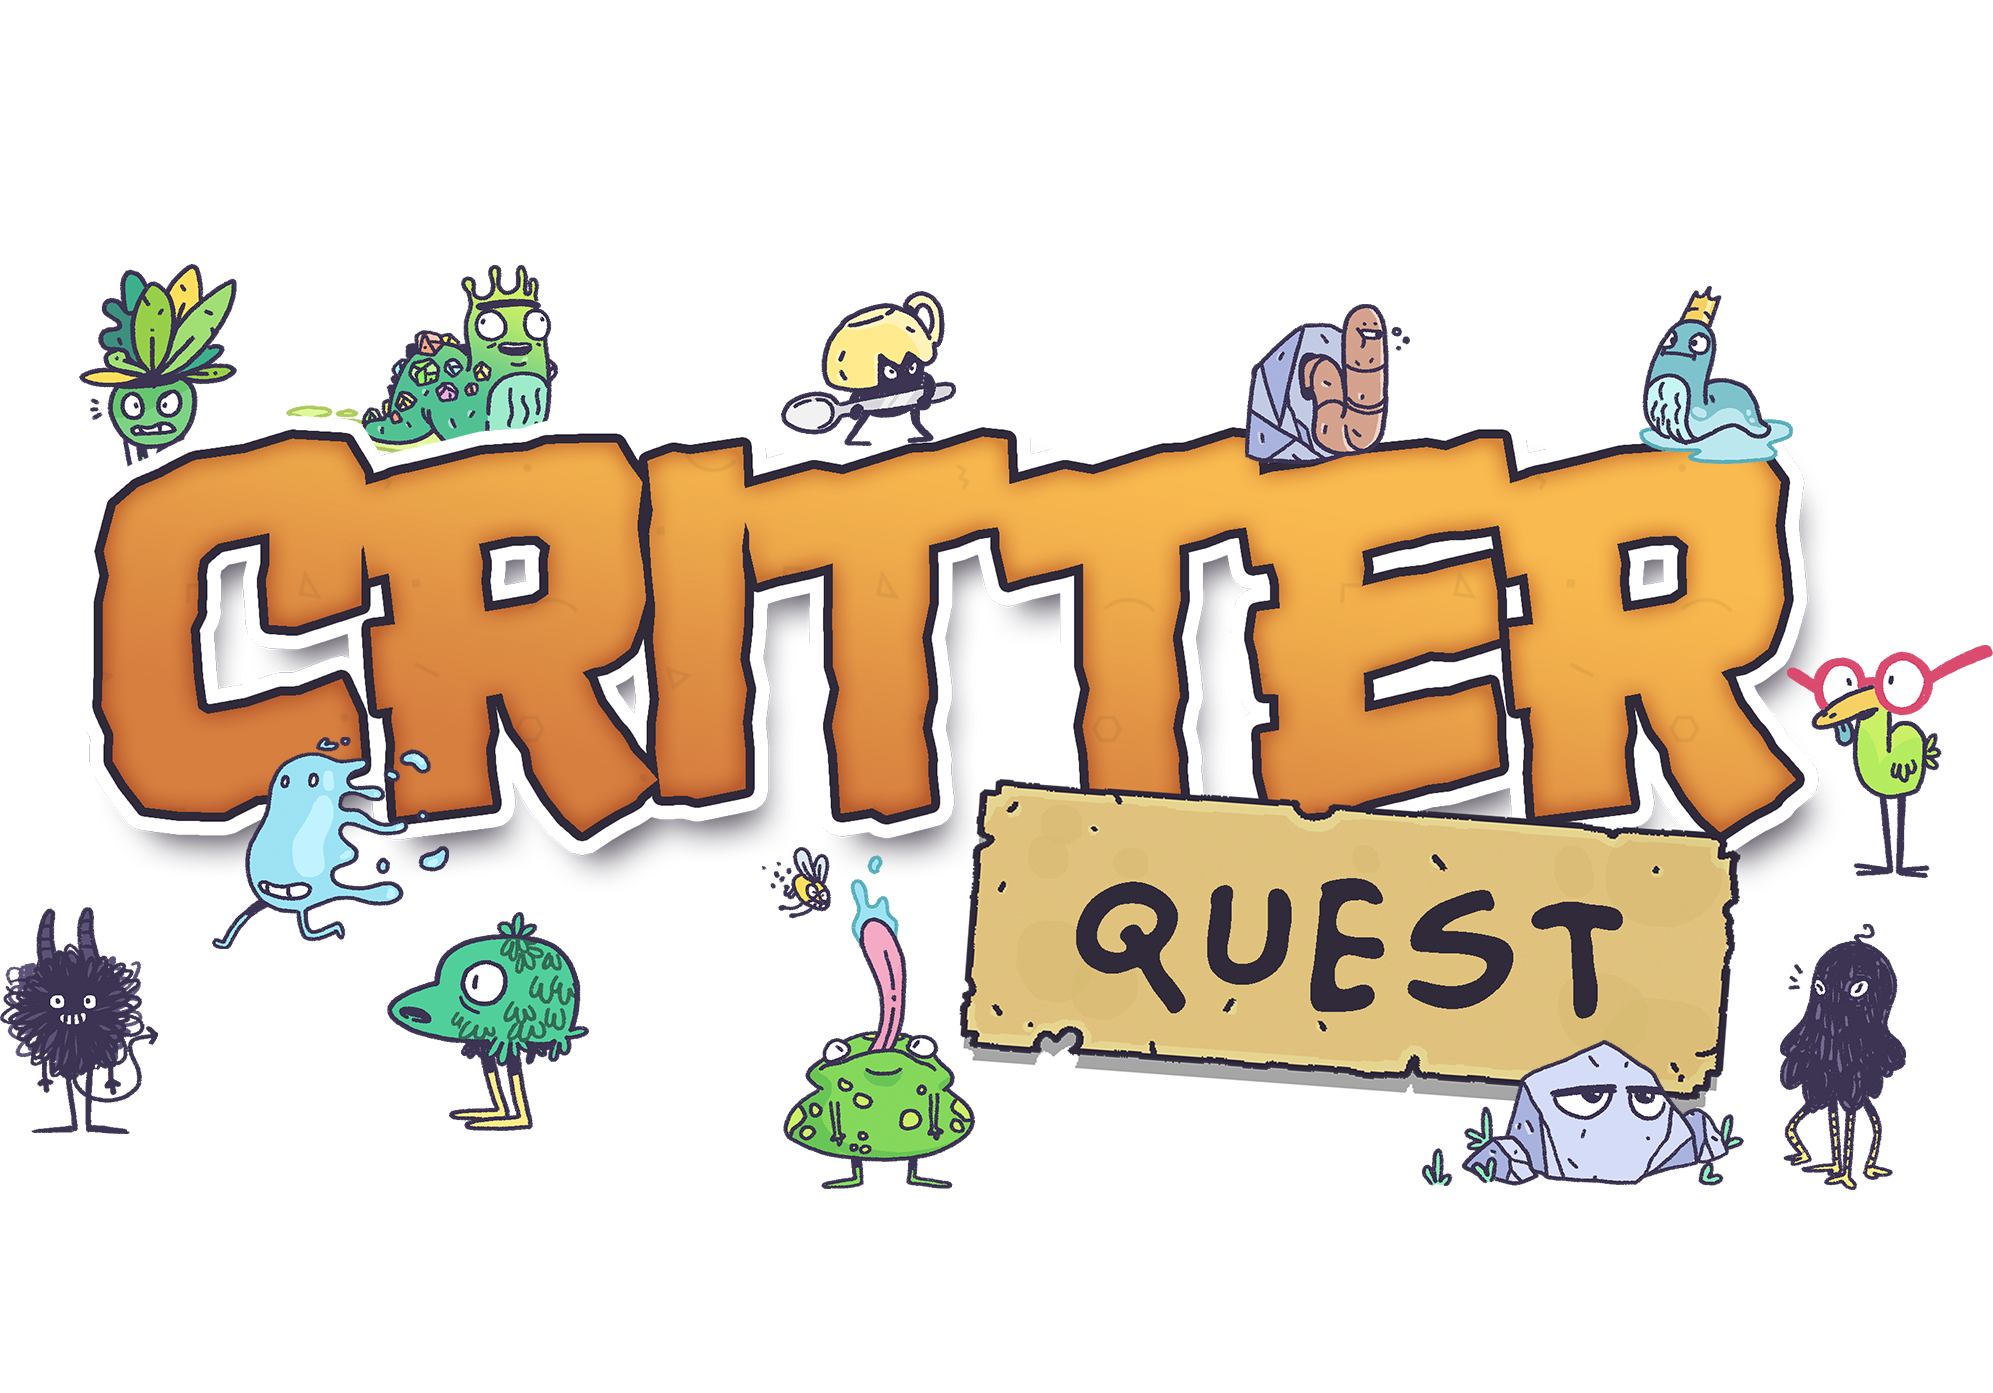 Critter Quest Game Development